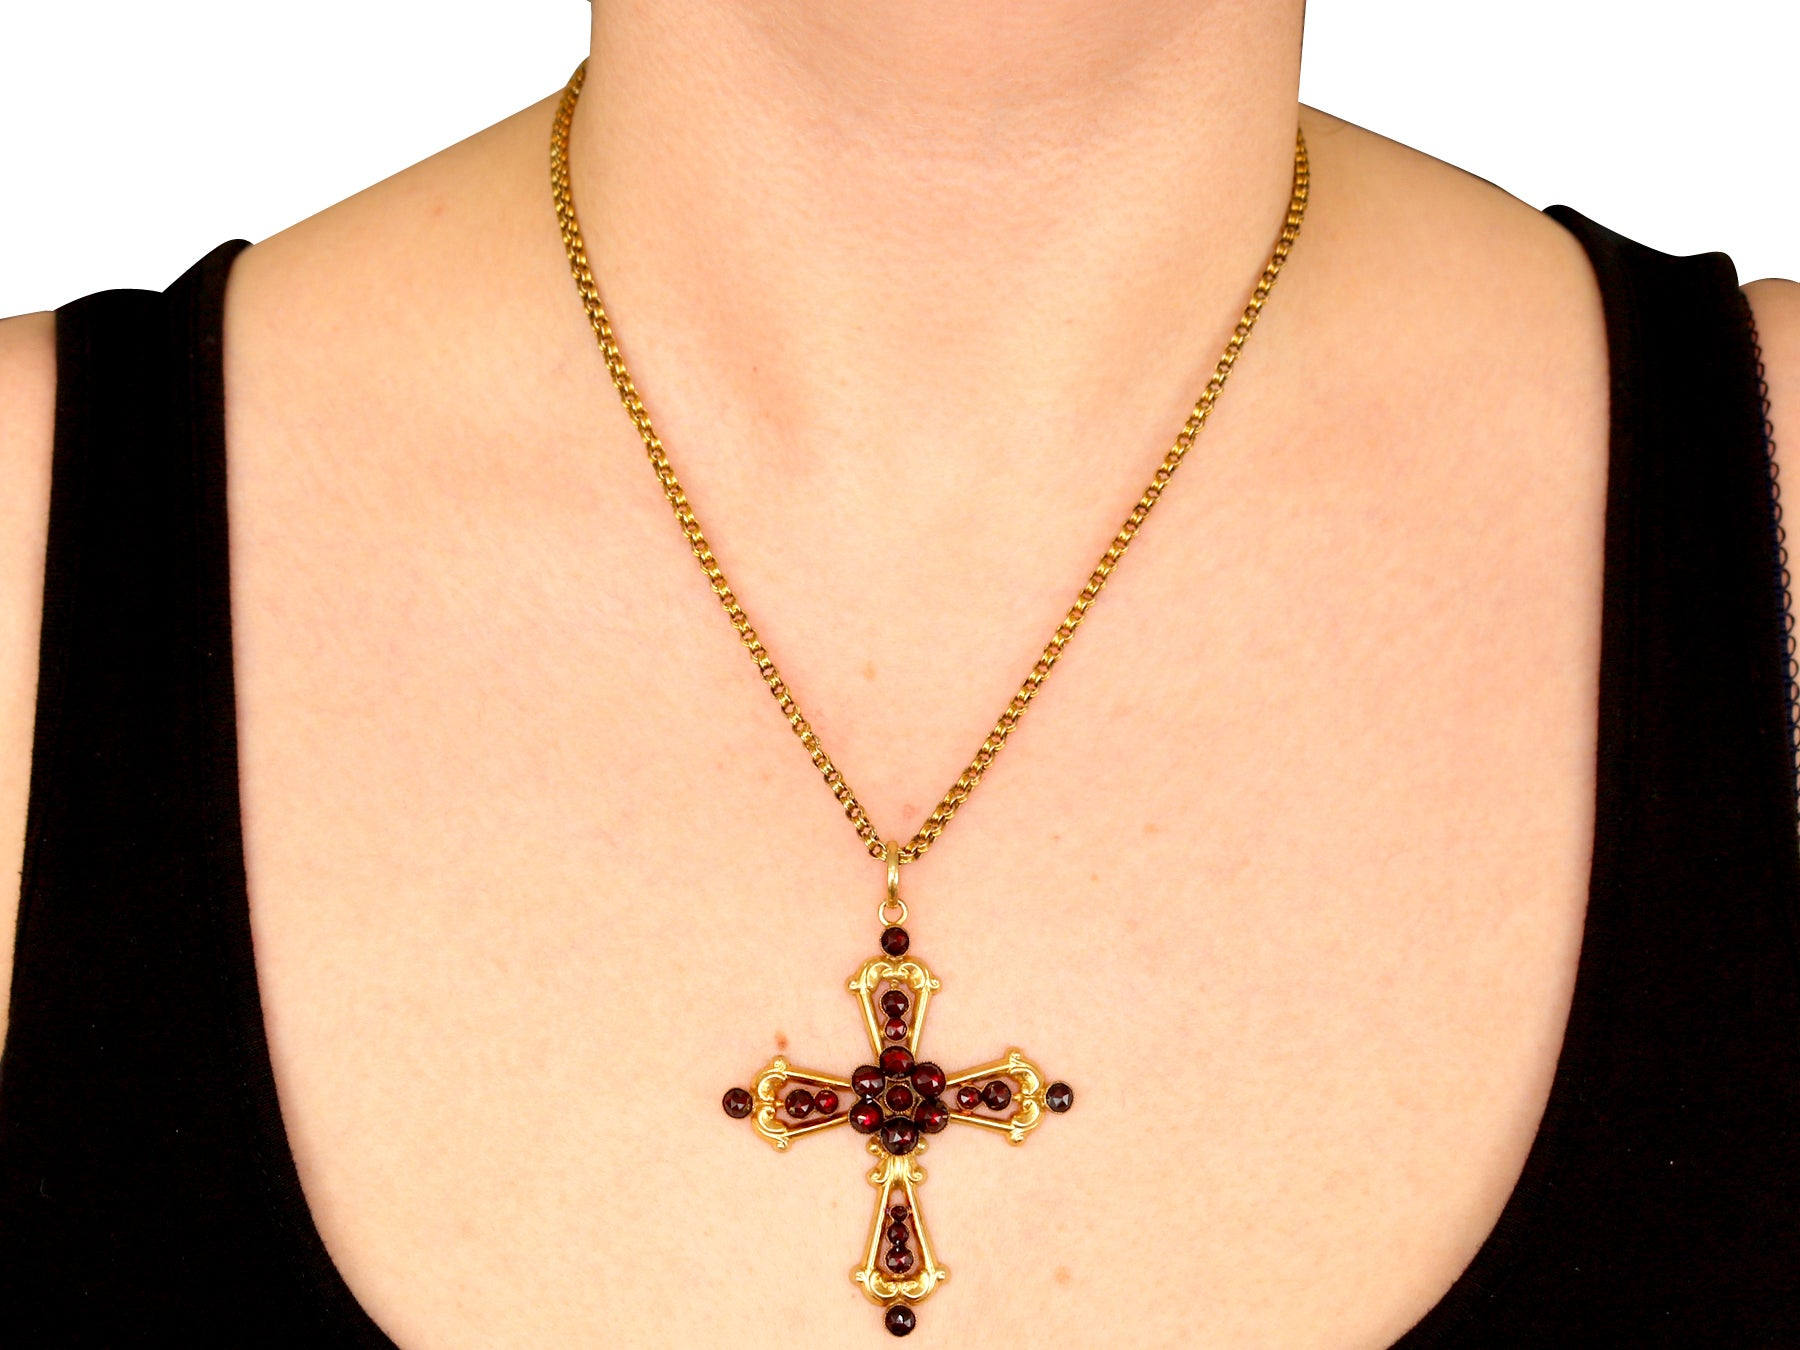 1890s Victorian Garnet Yellow Gold Cross Pendant For Sale at 1stdibs